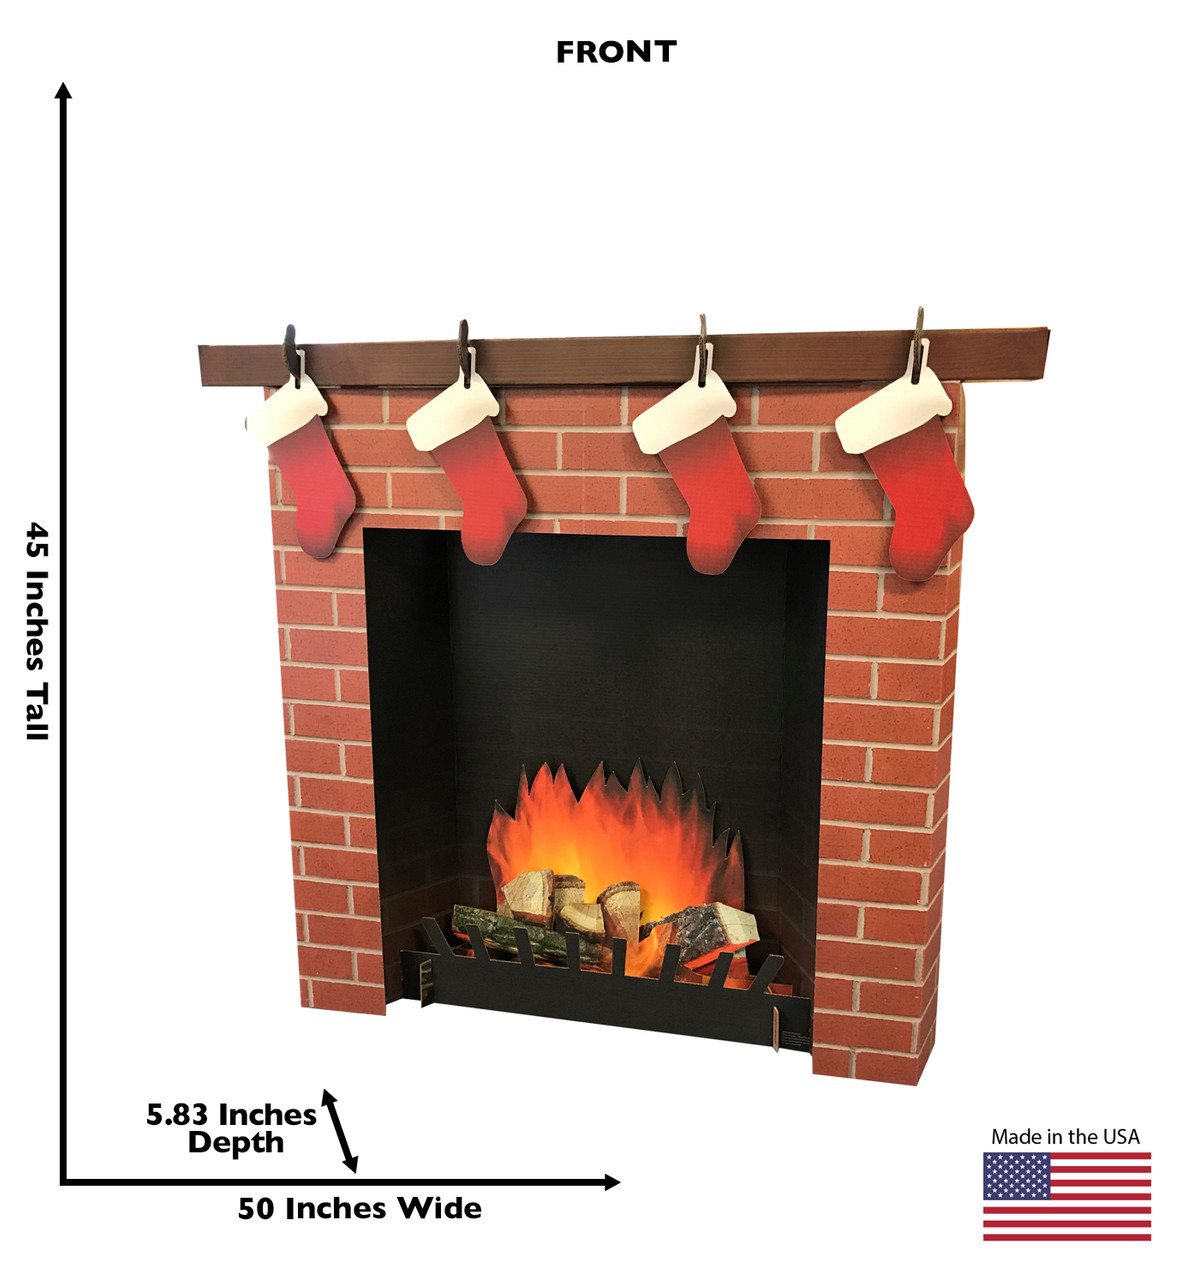 3D Brick Fireplace Cardboard Cutout 2569